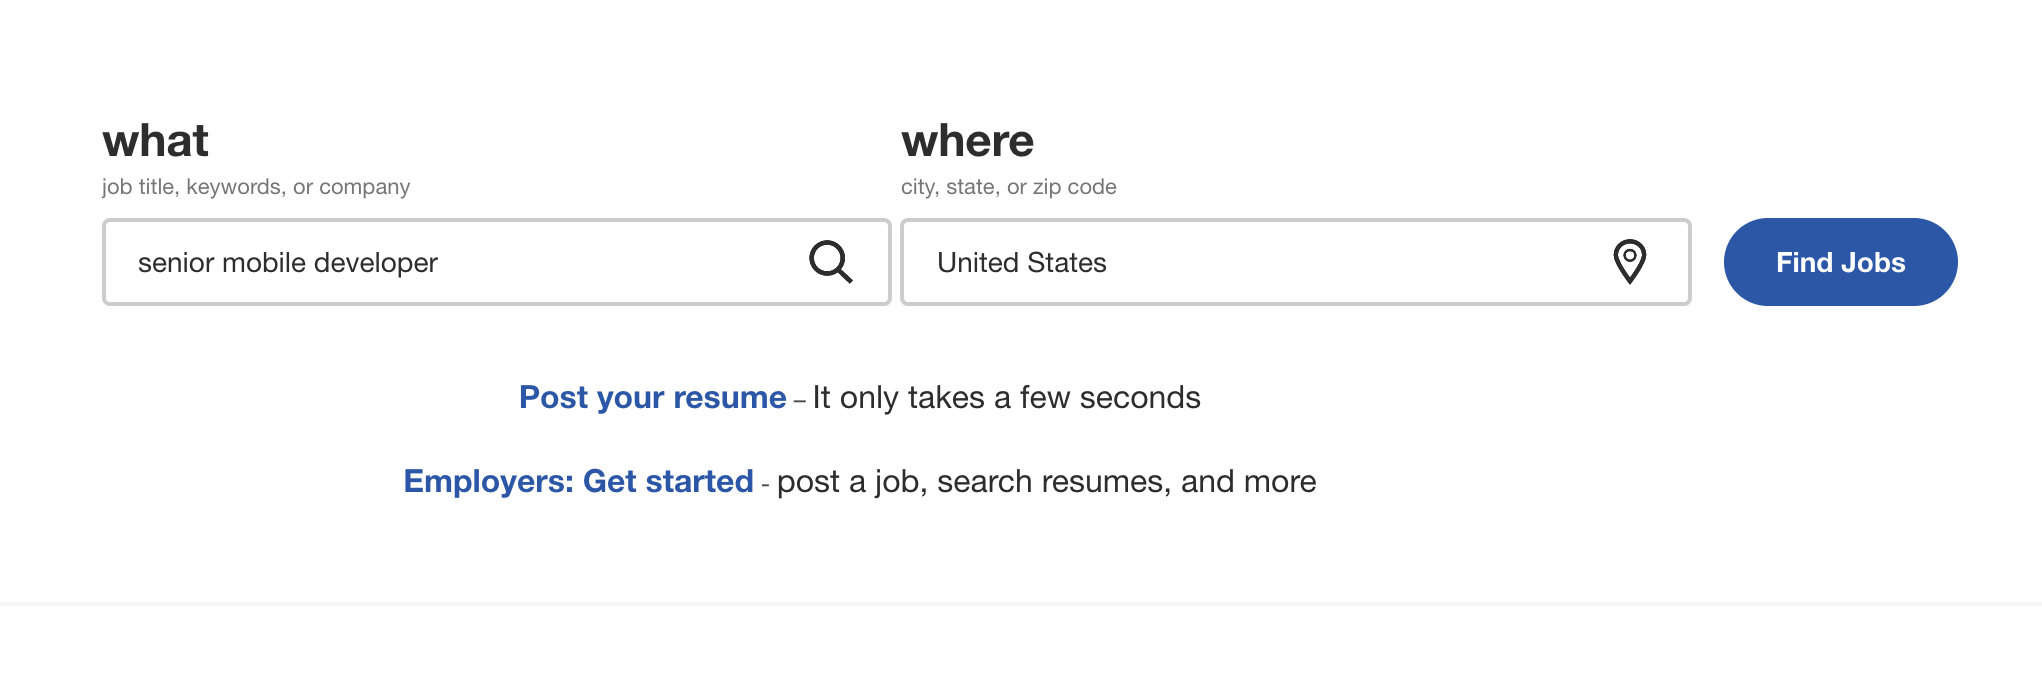 research job offers